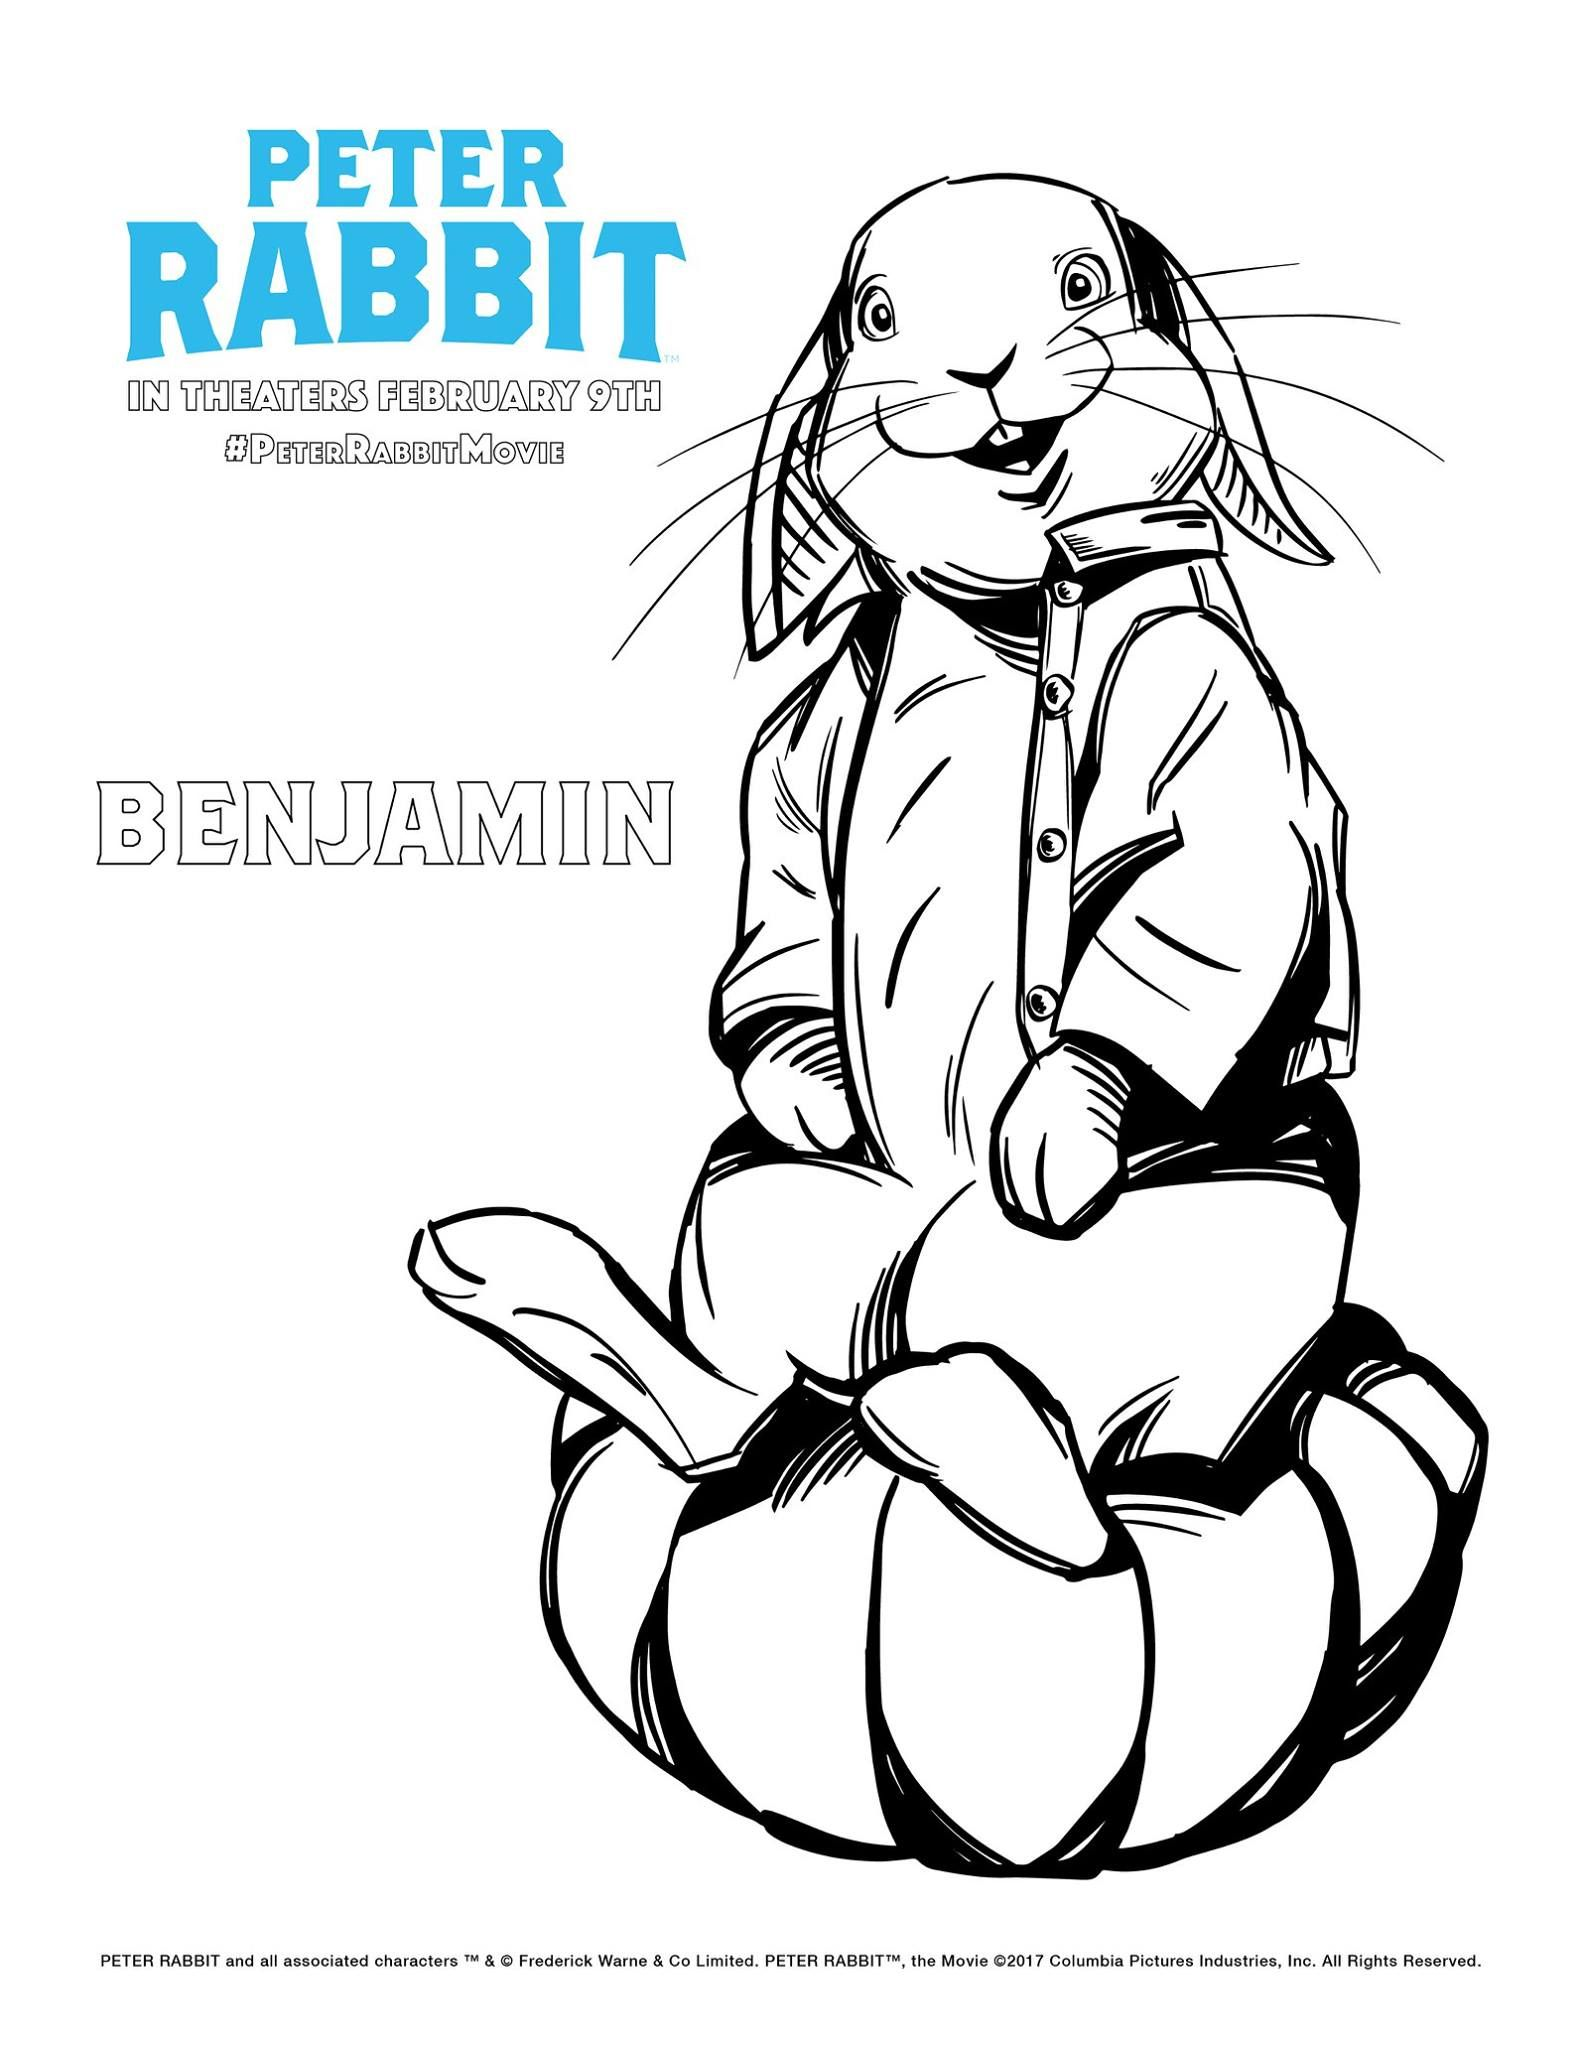 Benjamin Bunny Colouring Peter Rabbit Peter Rabbit Movie Creation Coloring Pages